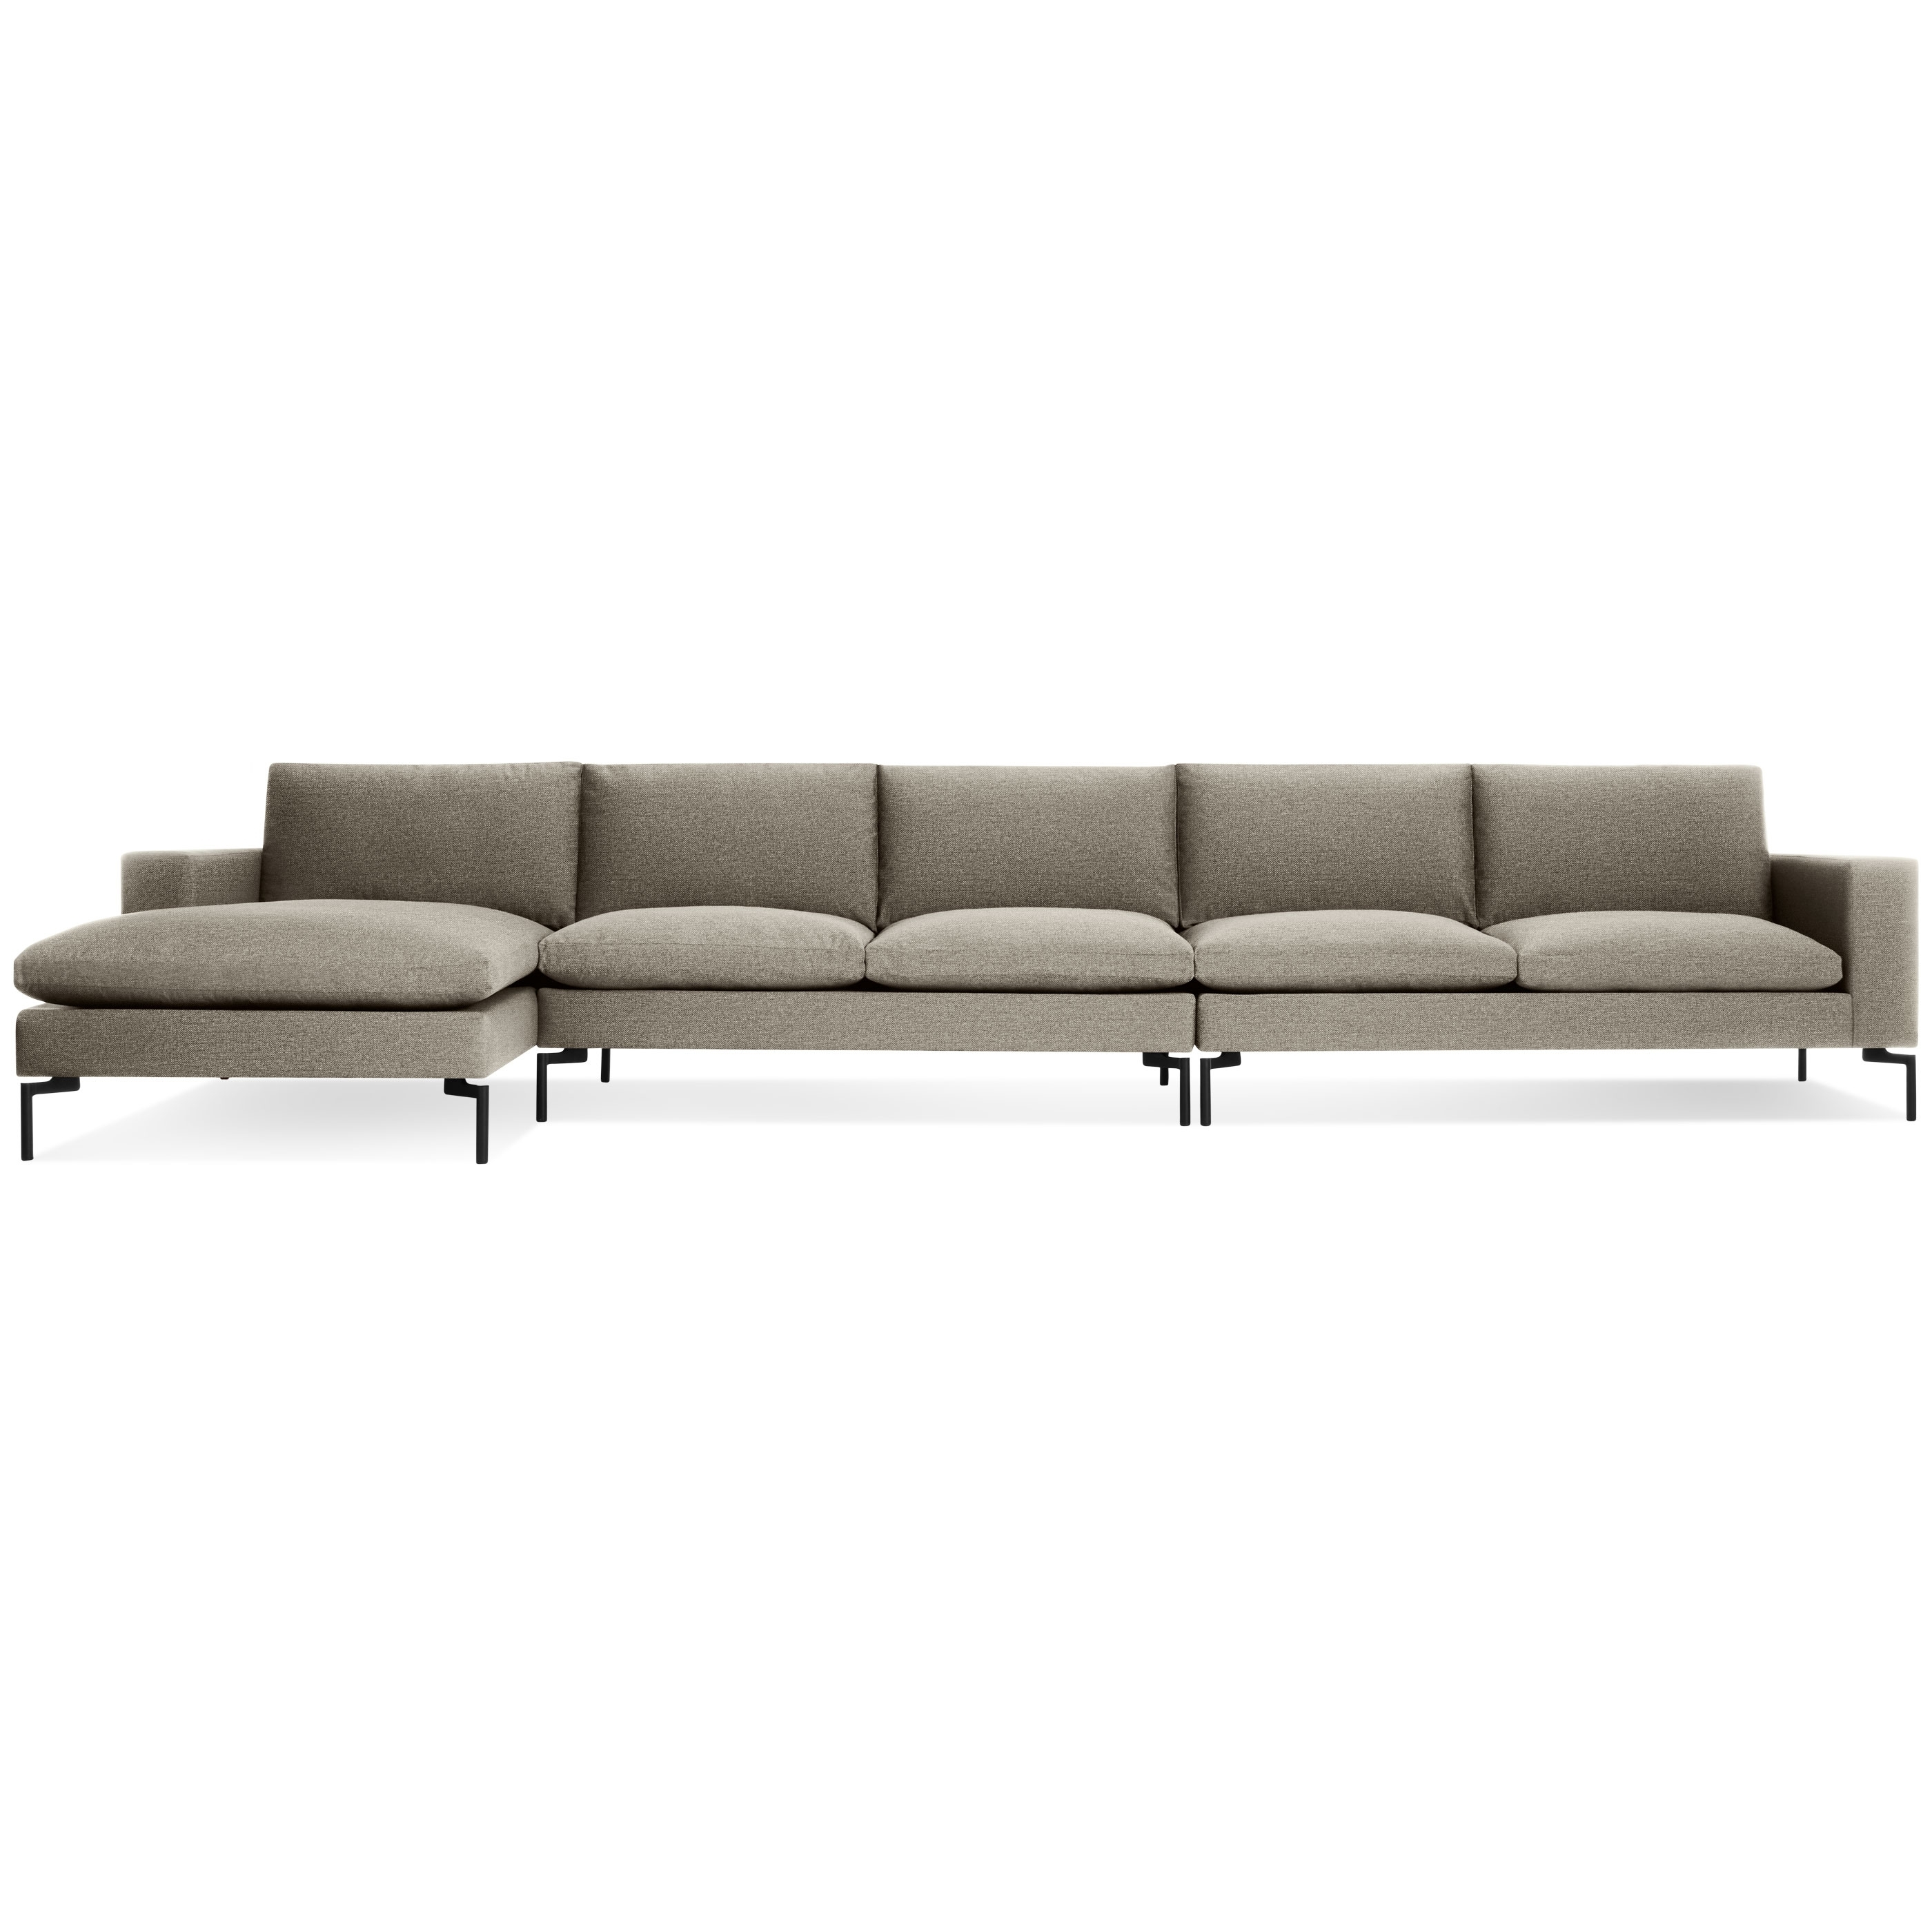 Blu Dot With Regard To Modern Sectional Sofas (Gallery 18 of 20)